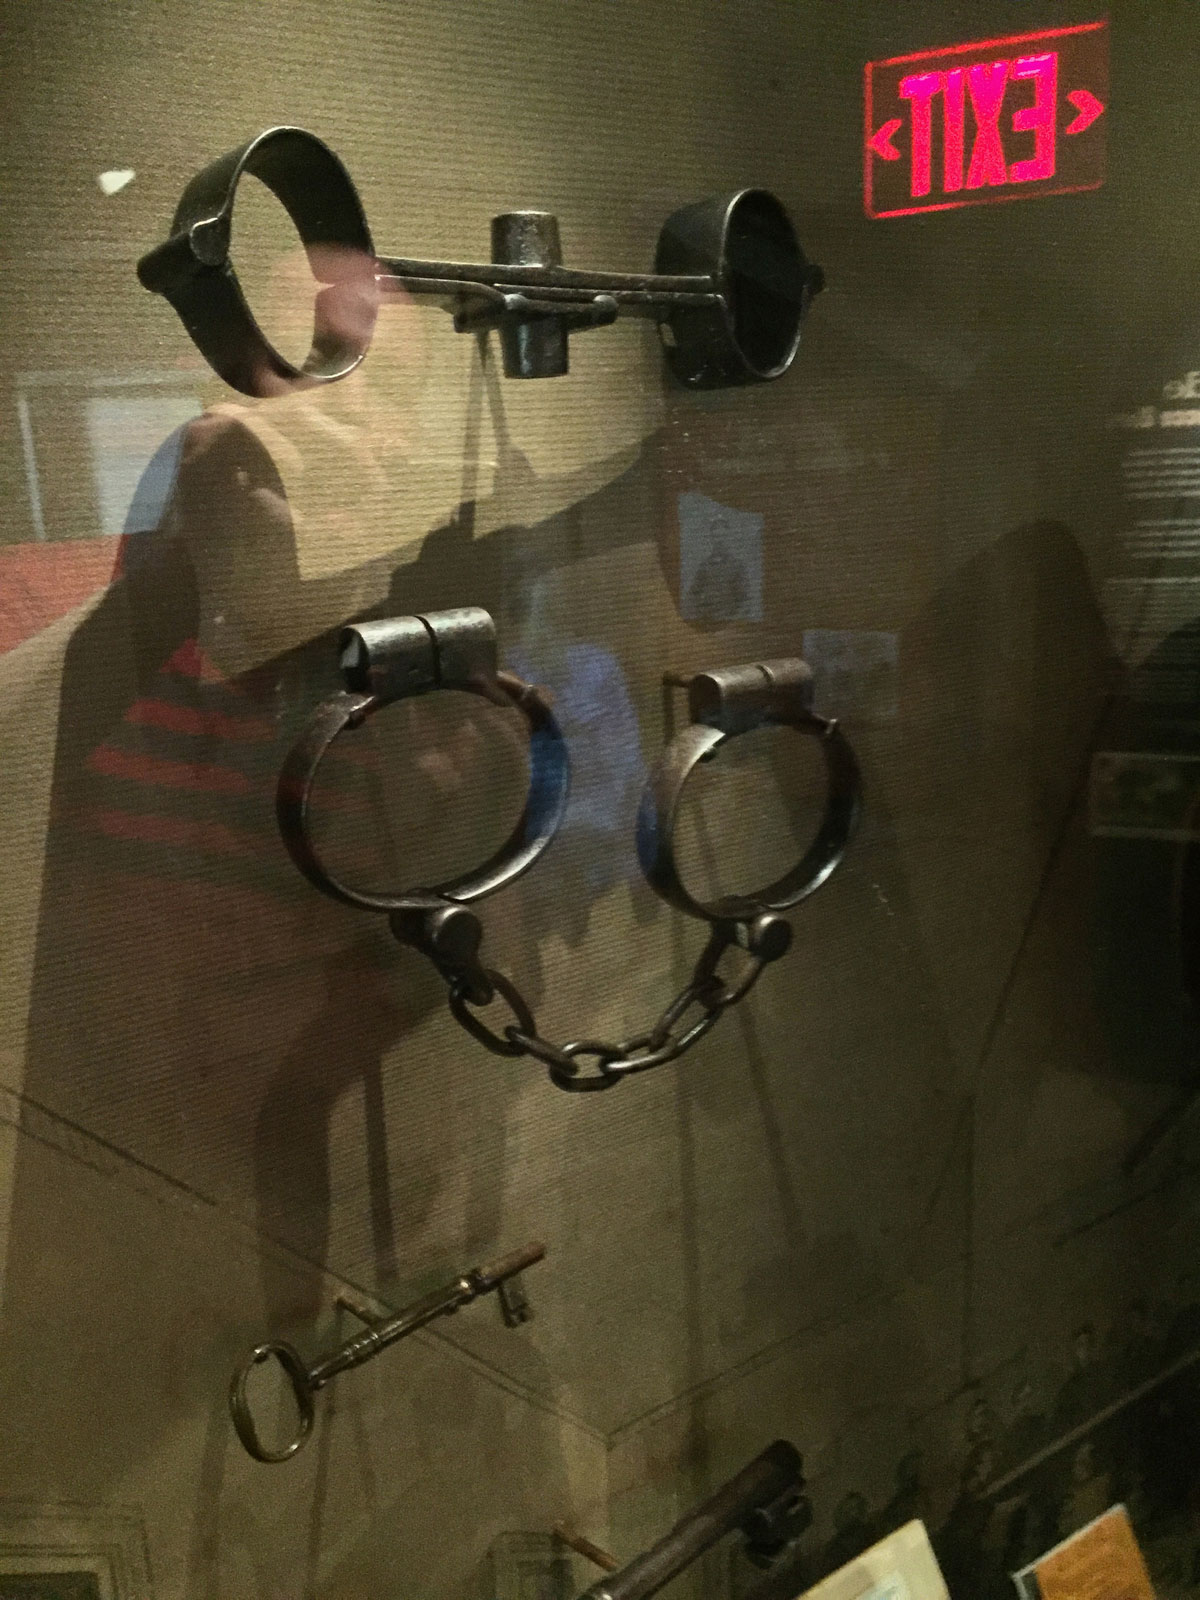 Samuel Mudd ridig handcuffs and leg cuffs